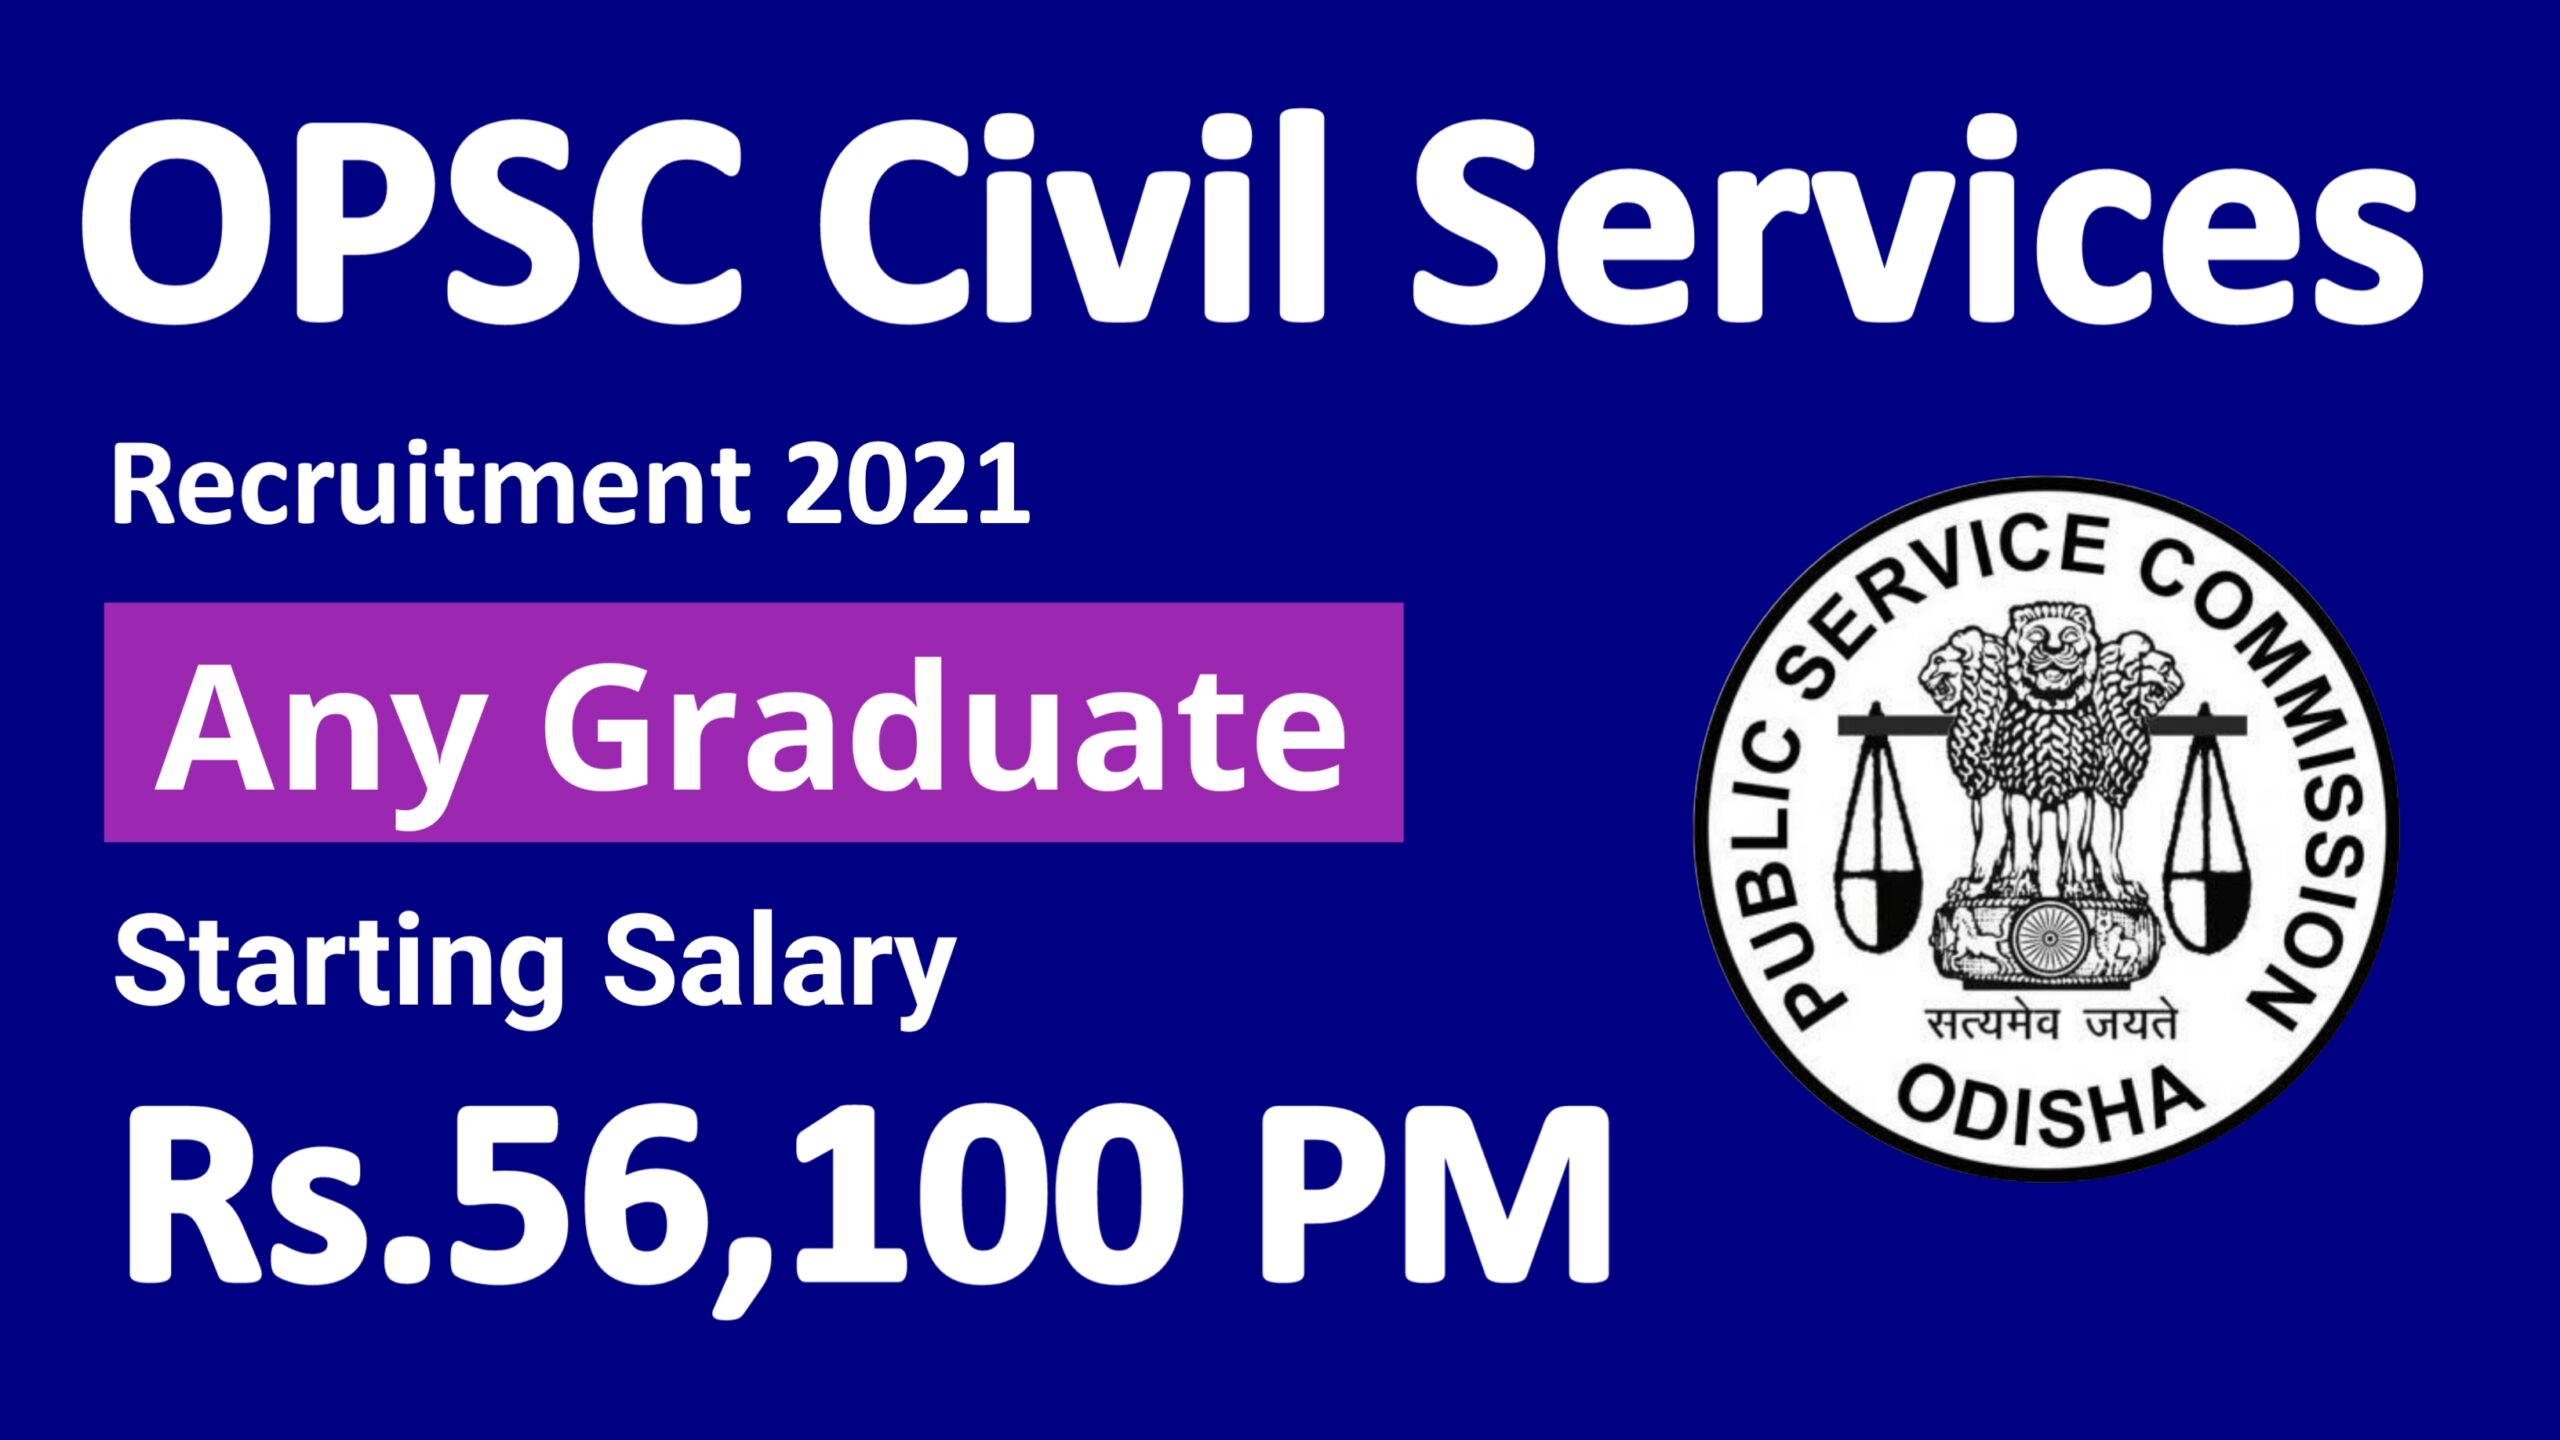 OPSC Civil Service Recruitment 2021